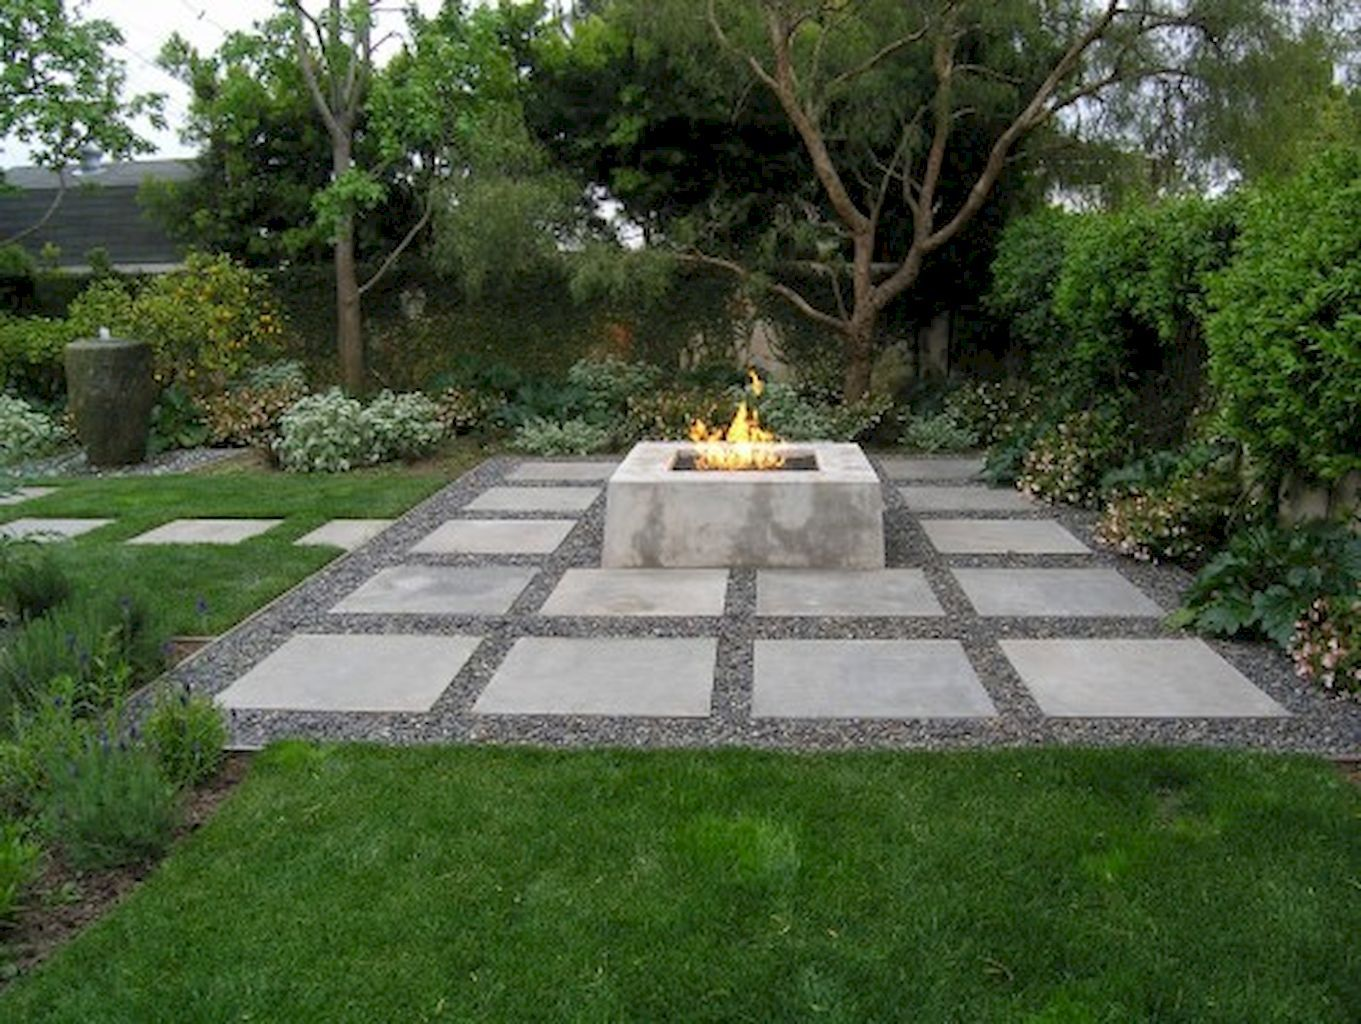 pretty backyard landscaping ideas on a budget. Nice 35 Easy and Cheap Fire Pit Backyard Landscaping Ideas  https crowdecor